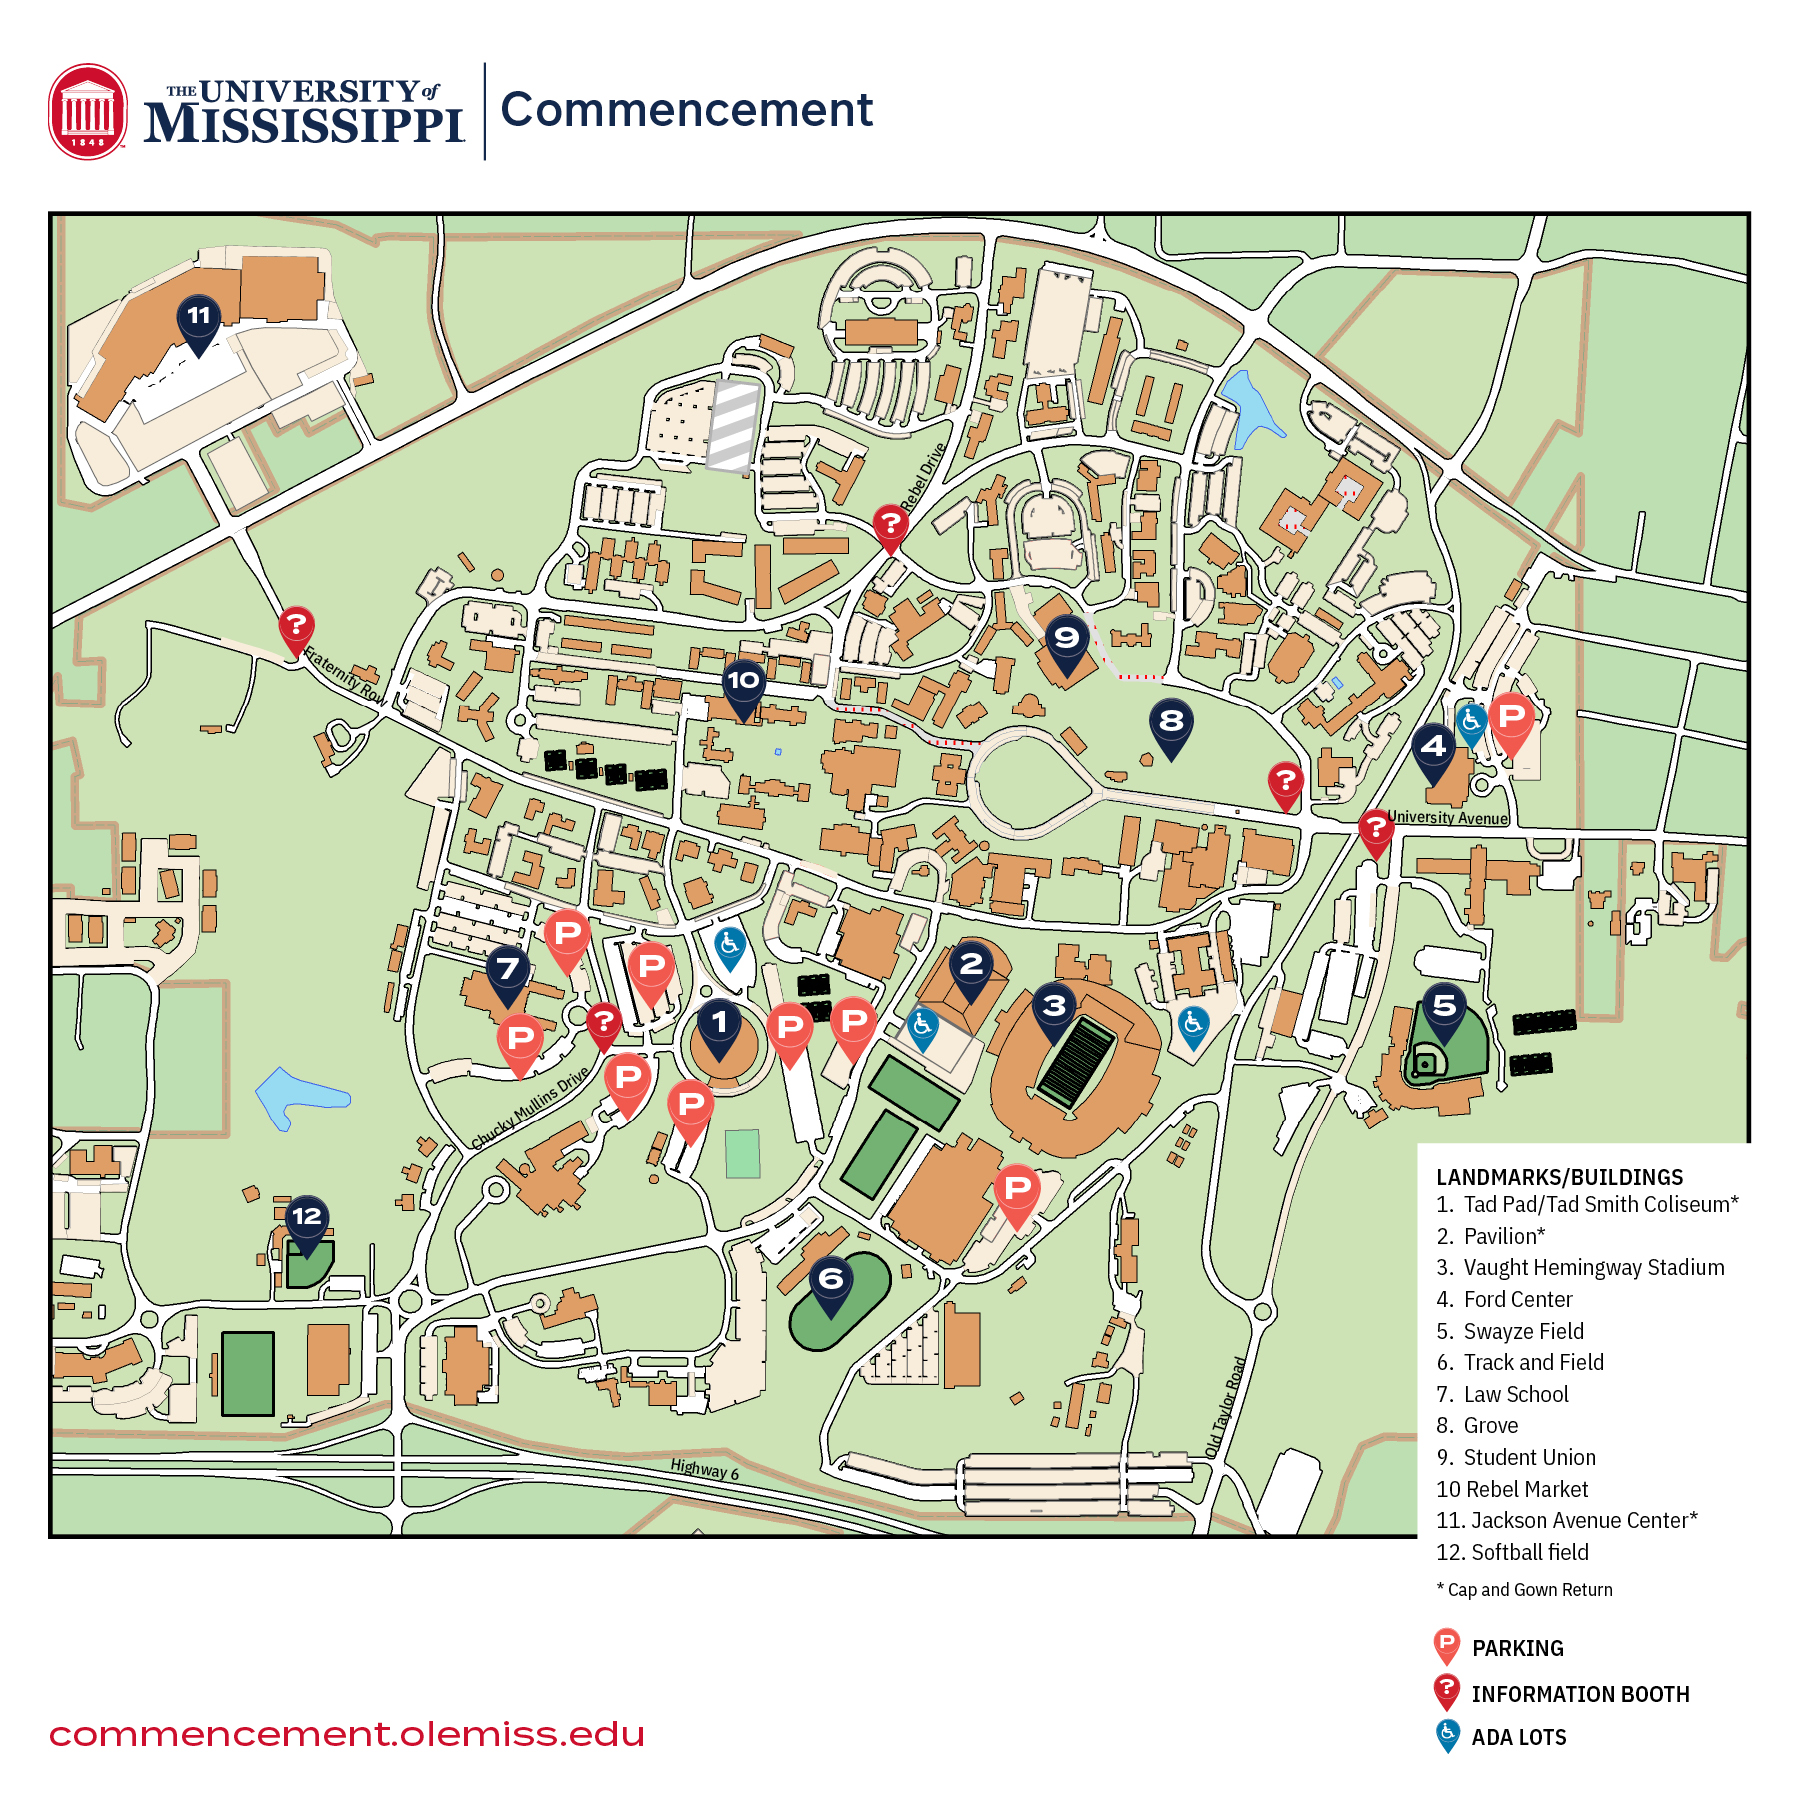 This map includes visual resources outlining important venues and parking lots available to guests for Commencement exercises